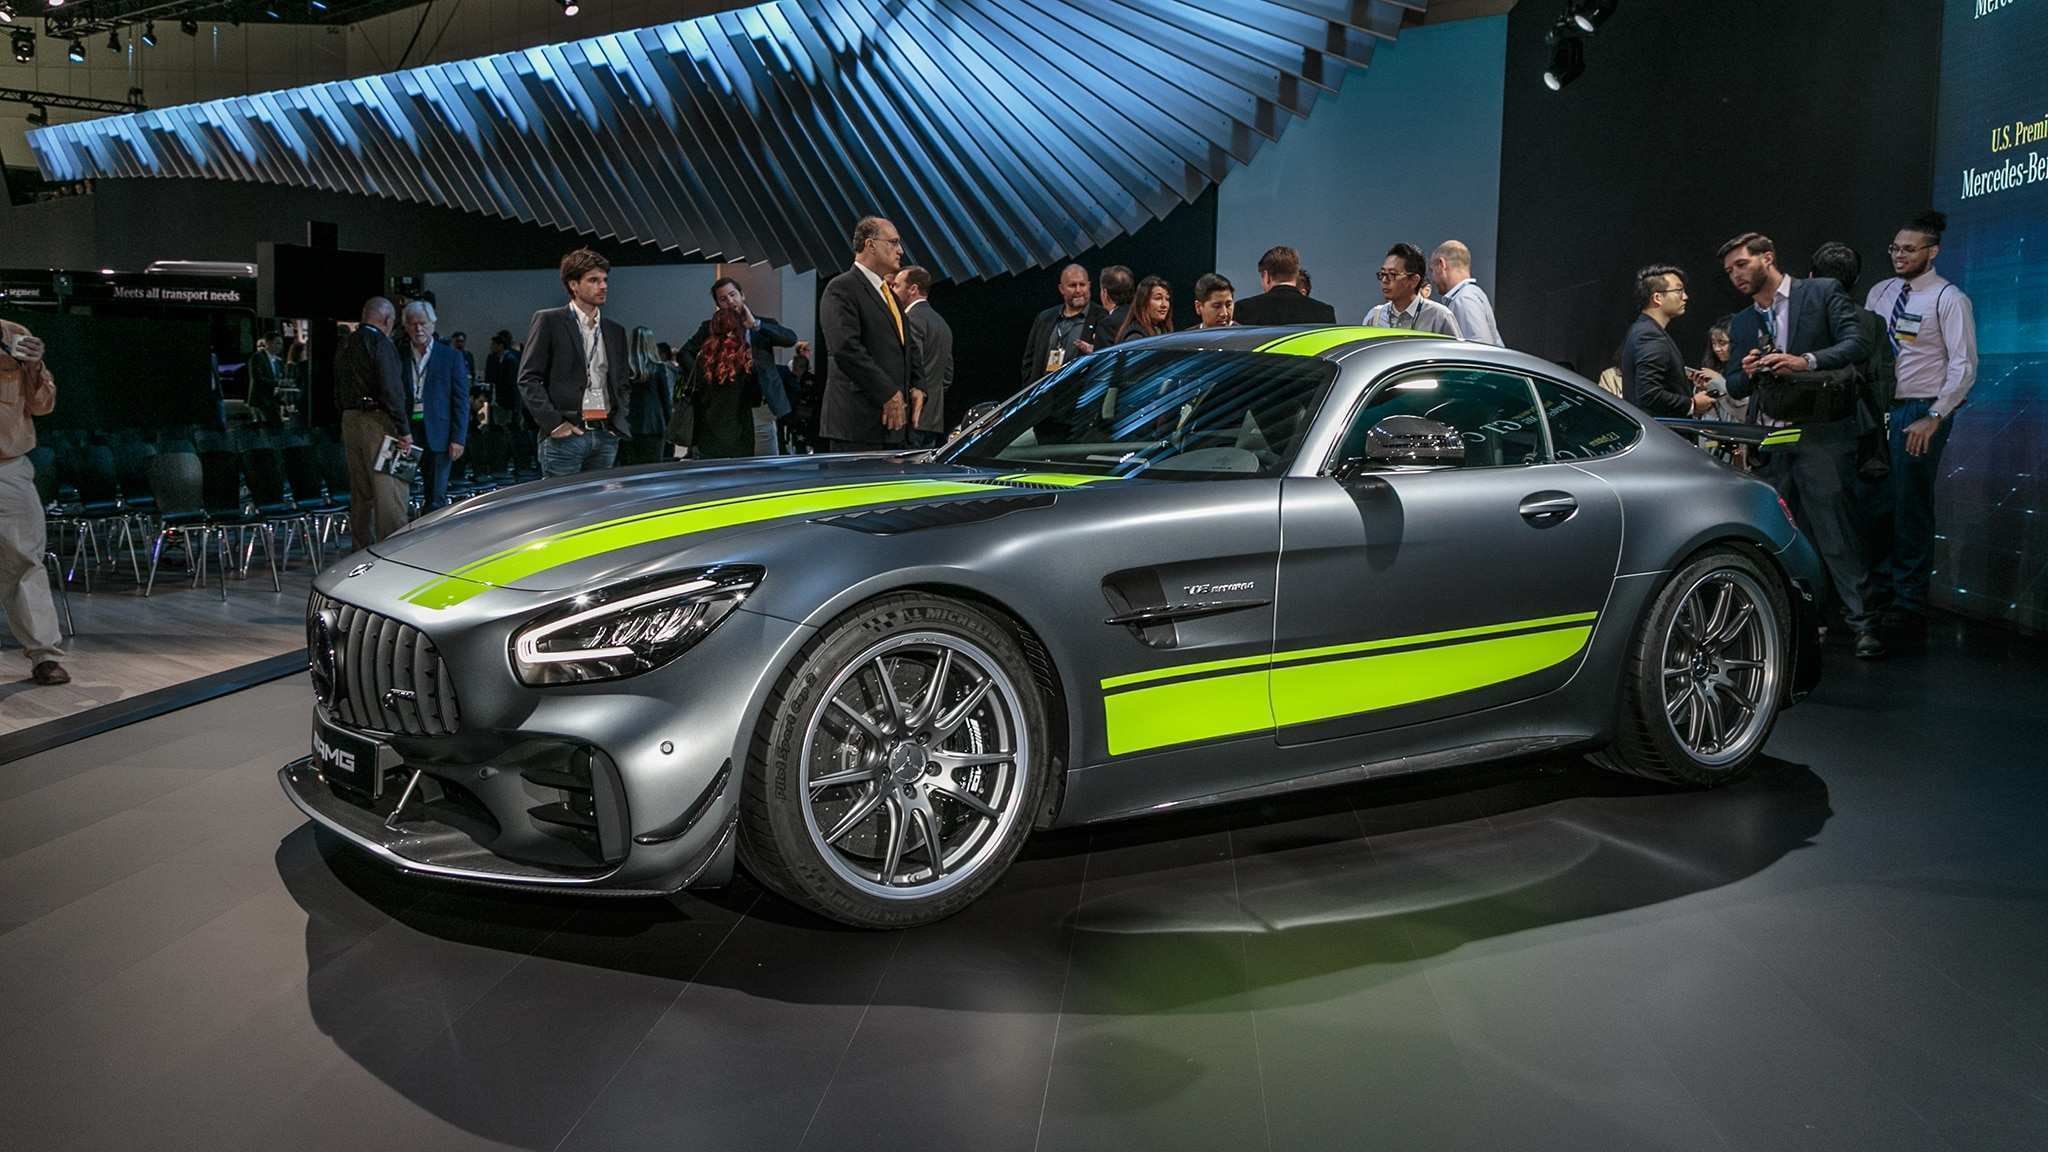 65 The 2020 Mercedes AMG GT Images